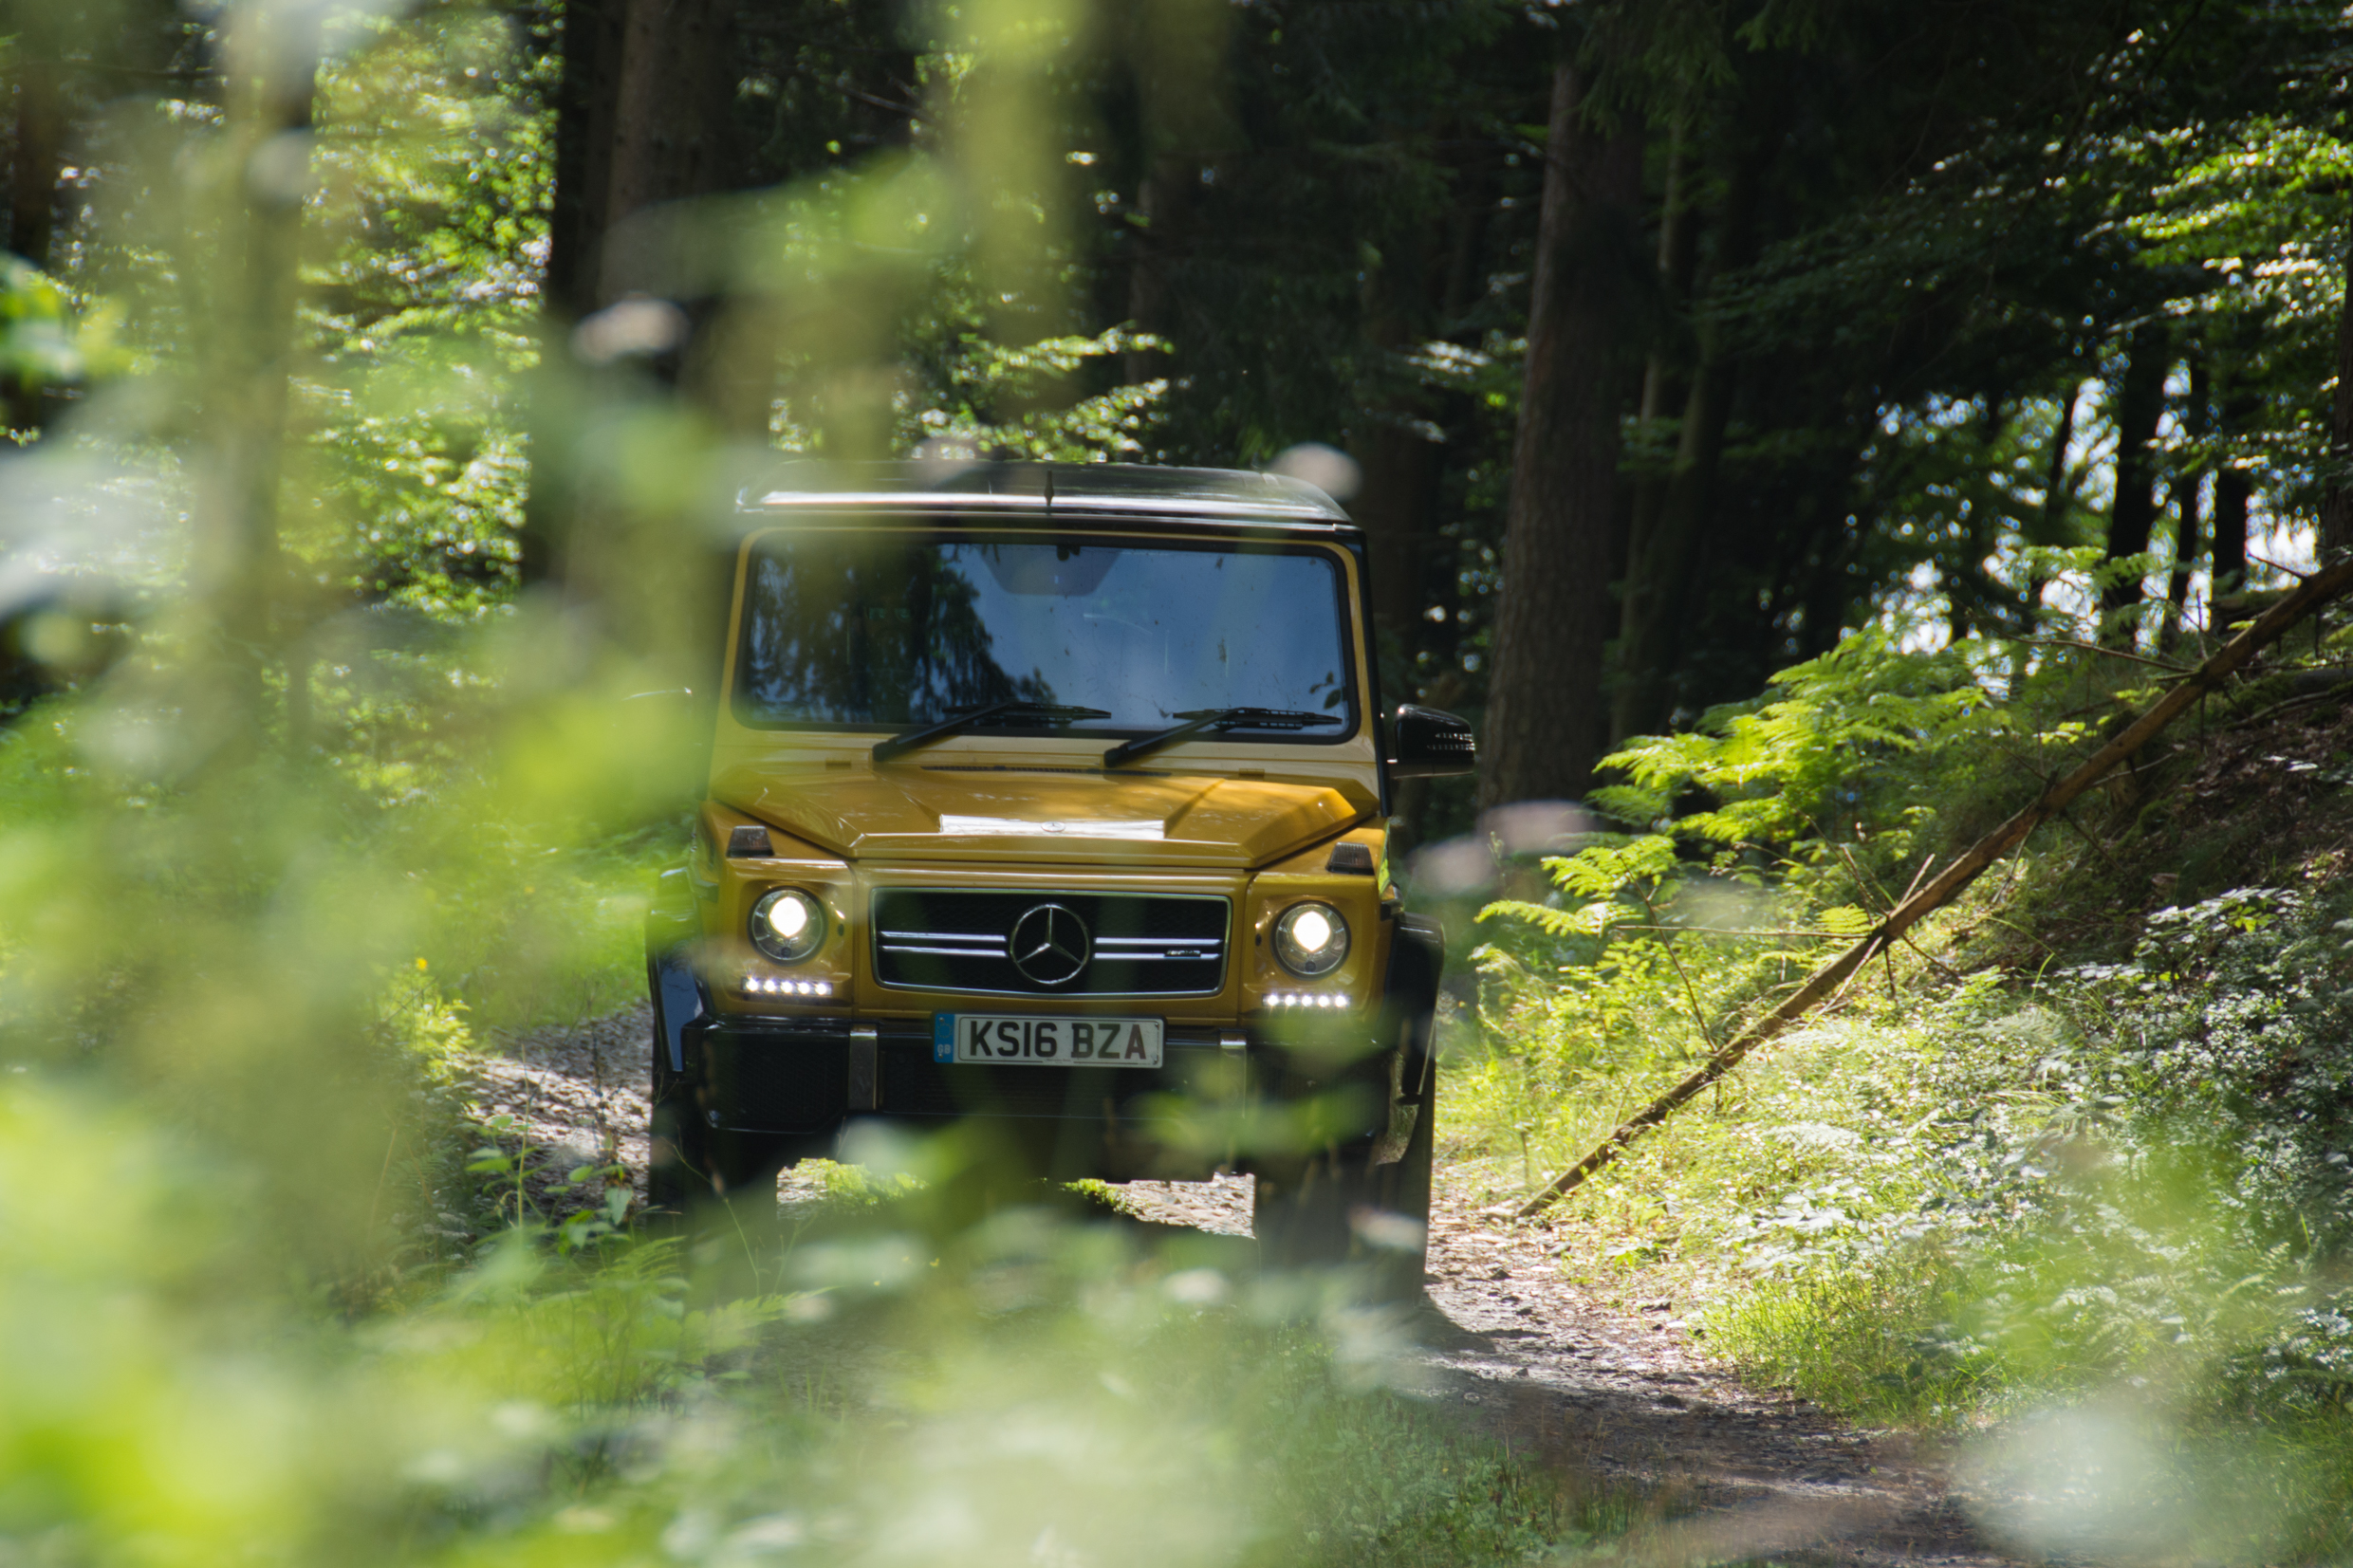 Mercedes-AMG G 63 in a forest